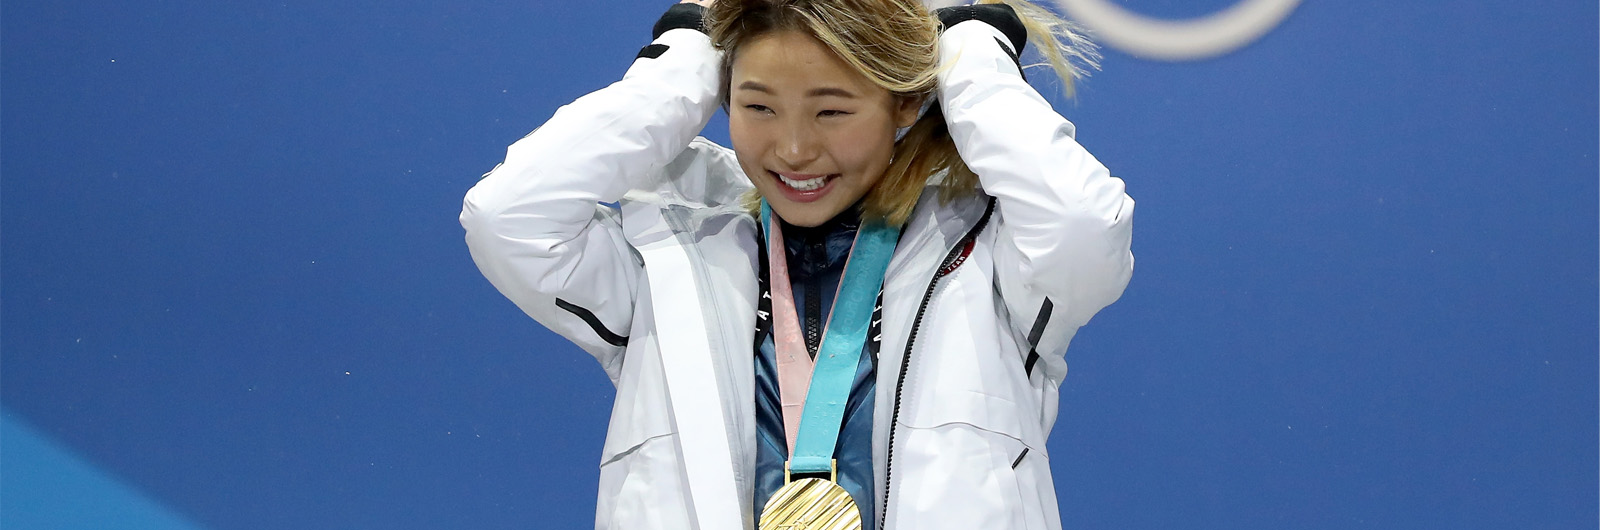 Chloe Kim's Swag is the Olympic Vibe We All Need